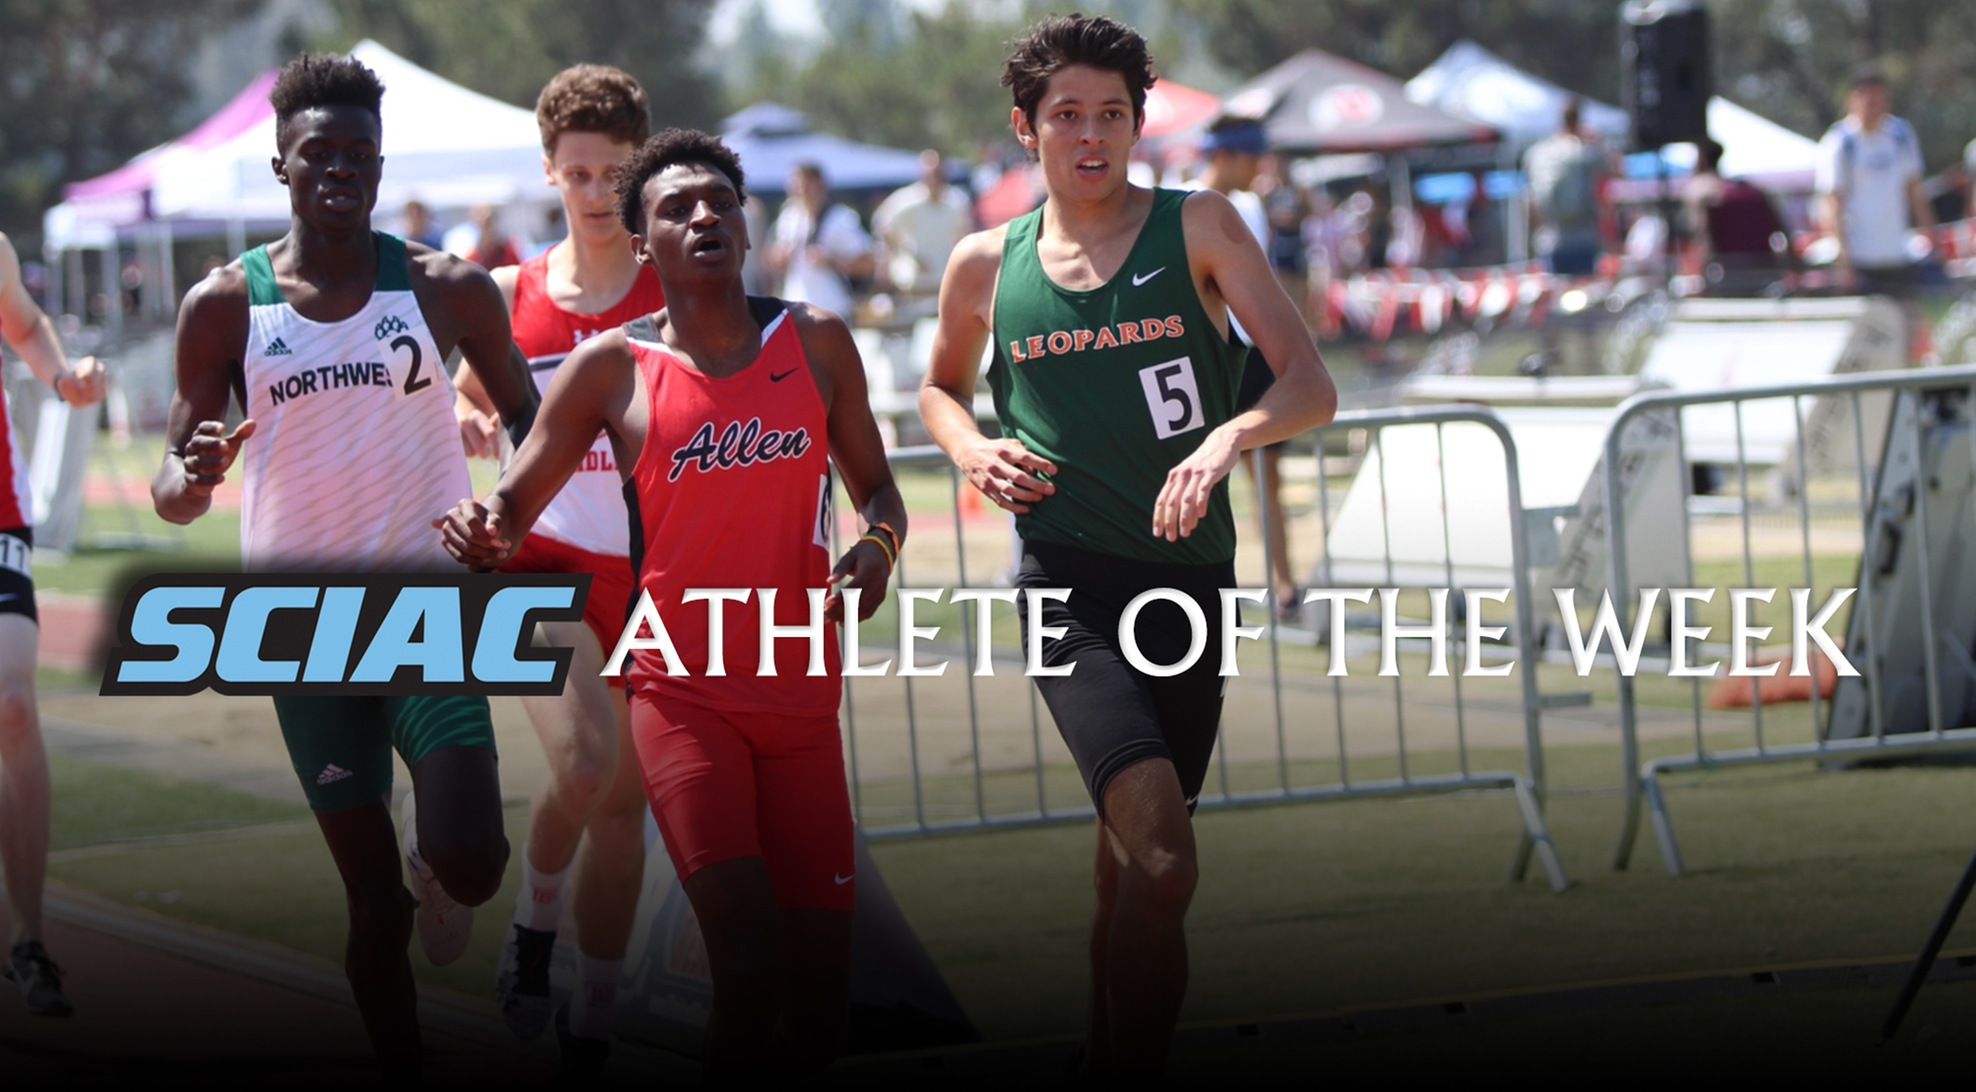 Salas named SCIAC Athlete of the Week